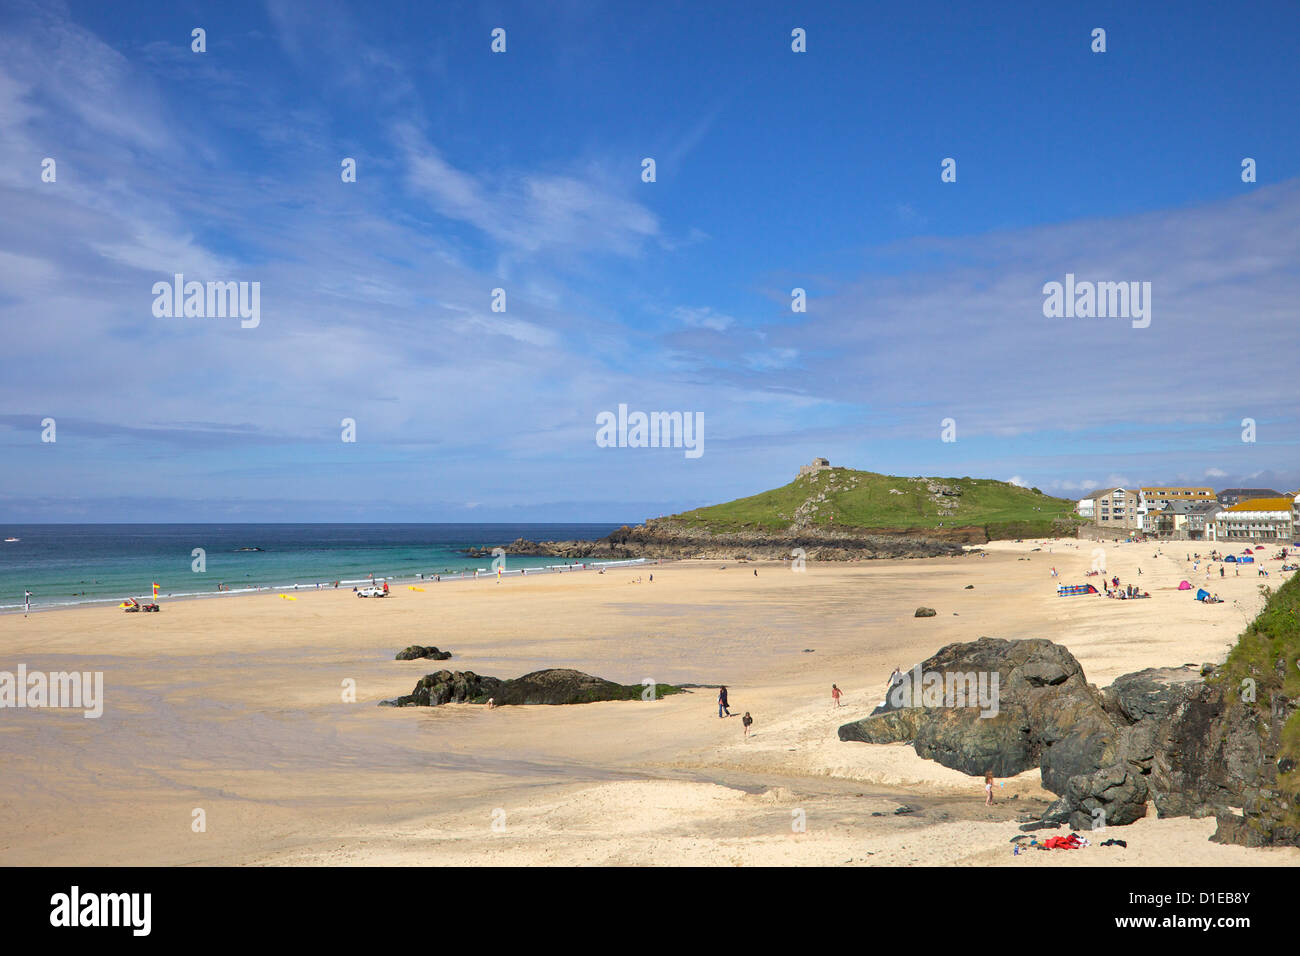 Summer sunshine on Porthmeor beach, St. Ives, Cornwall, England, United Kingdom, Europe Stock Photo